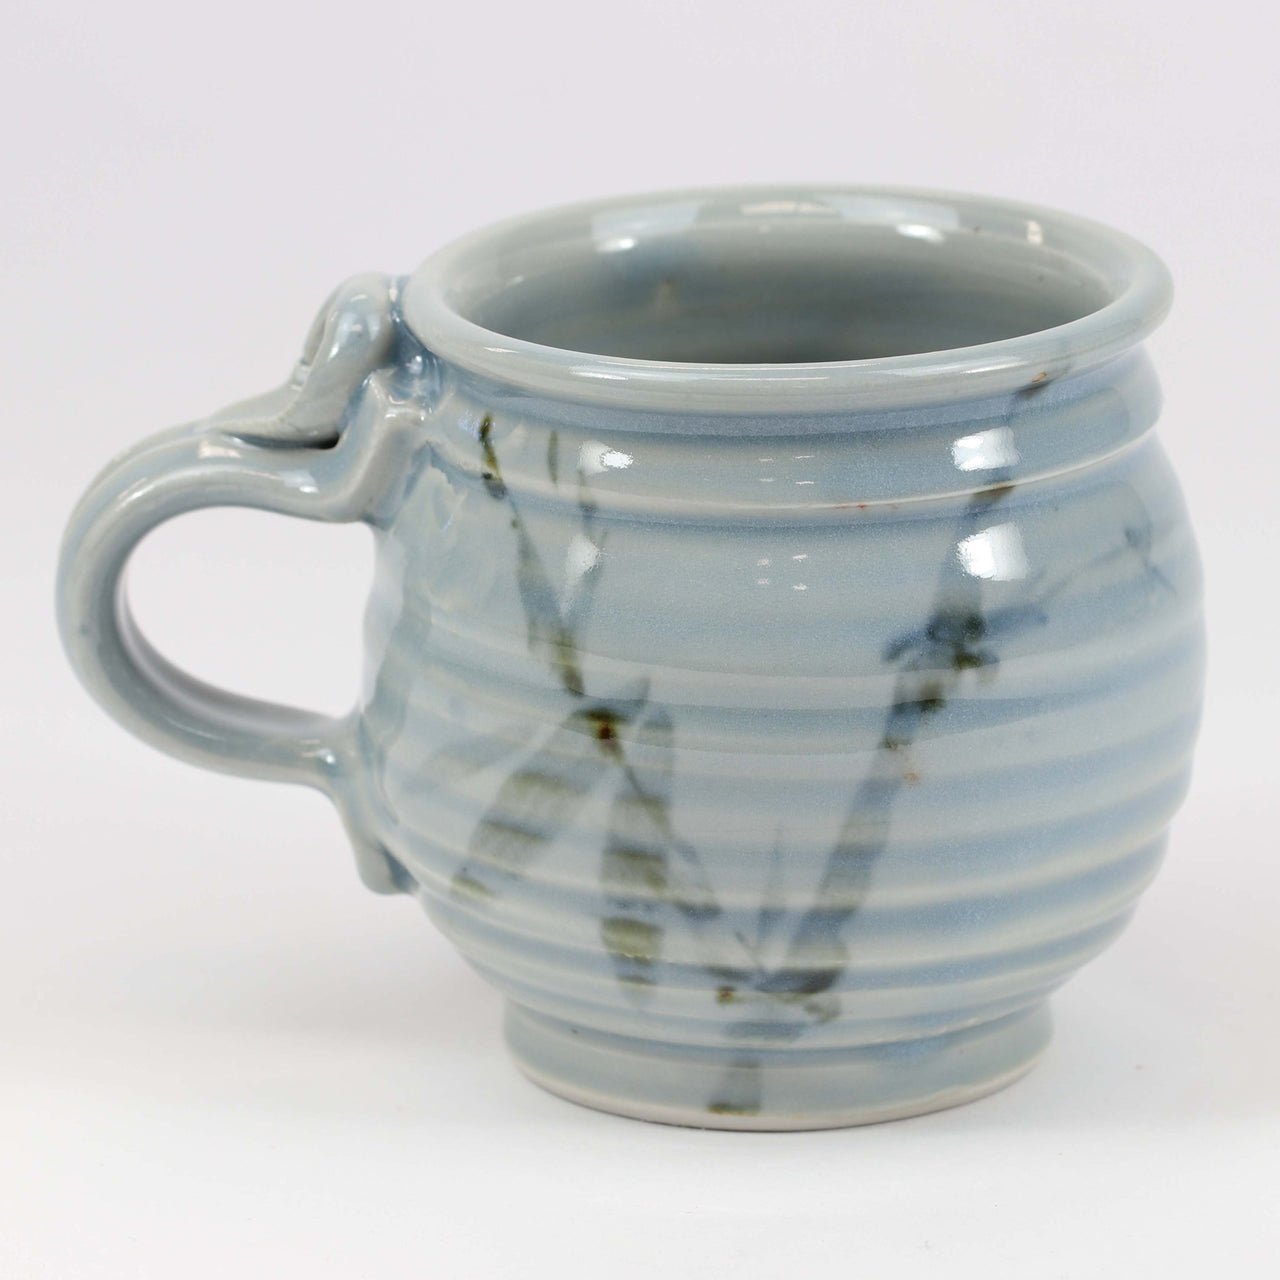 Small 11 oz. Mug: Blue Celadon Bamboo Pattern